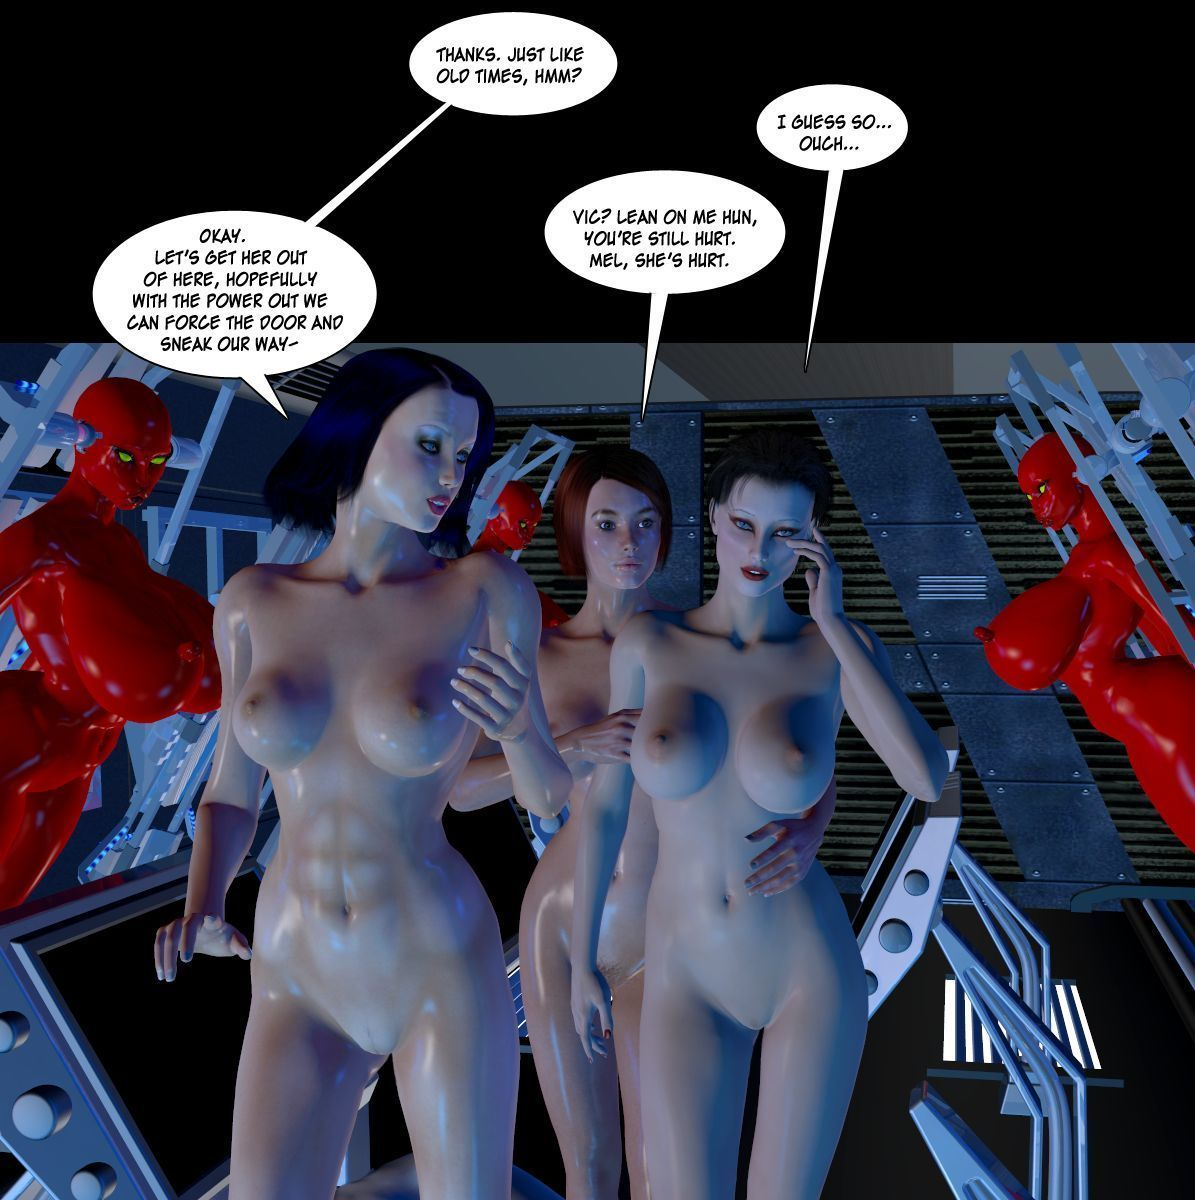 [dollmistress] Interactive Processing (With Captions) - part 3